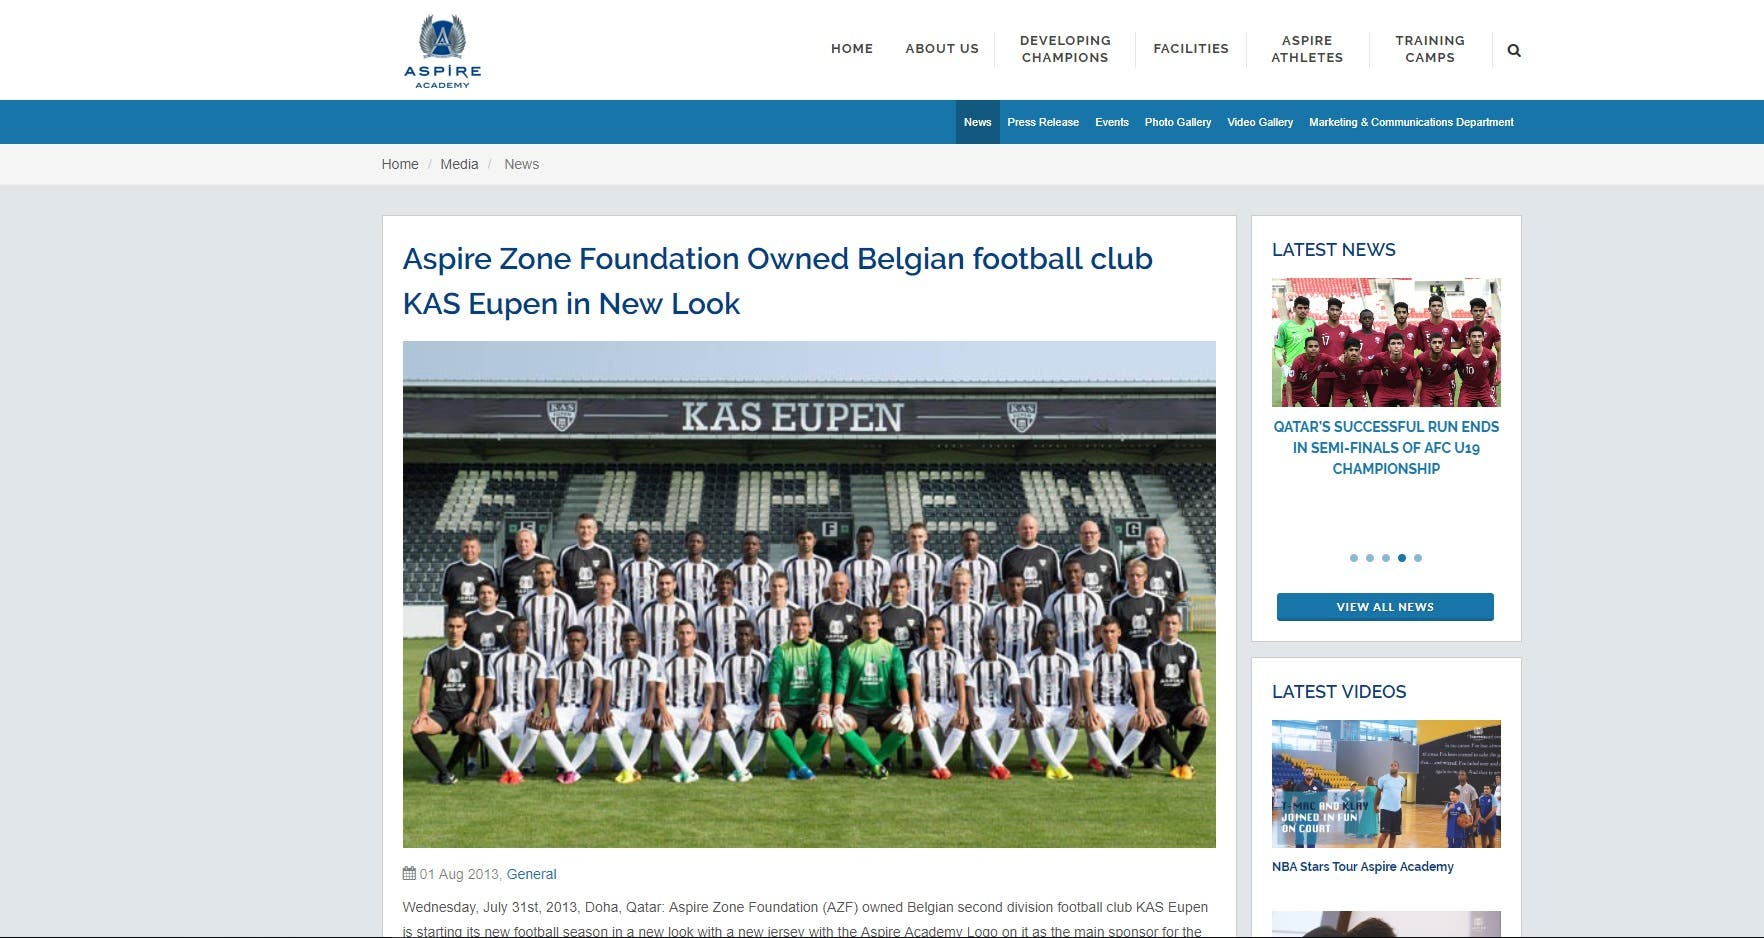 Aspire Zone Foundation (AZF) owned Belgian second division football club KAS Eupen in 2013